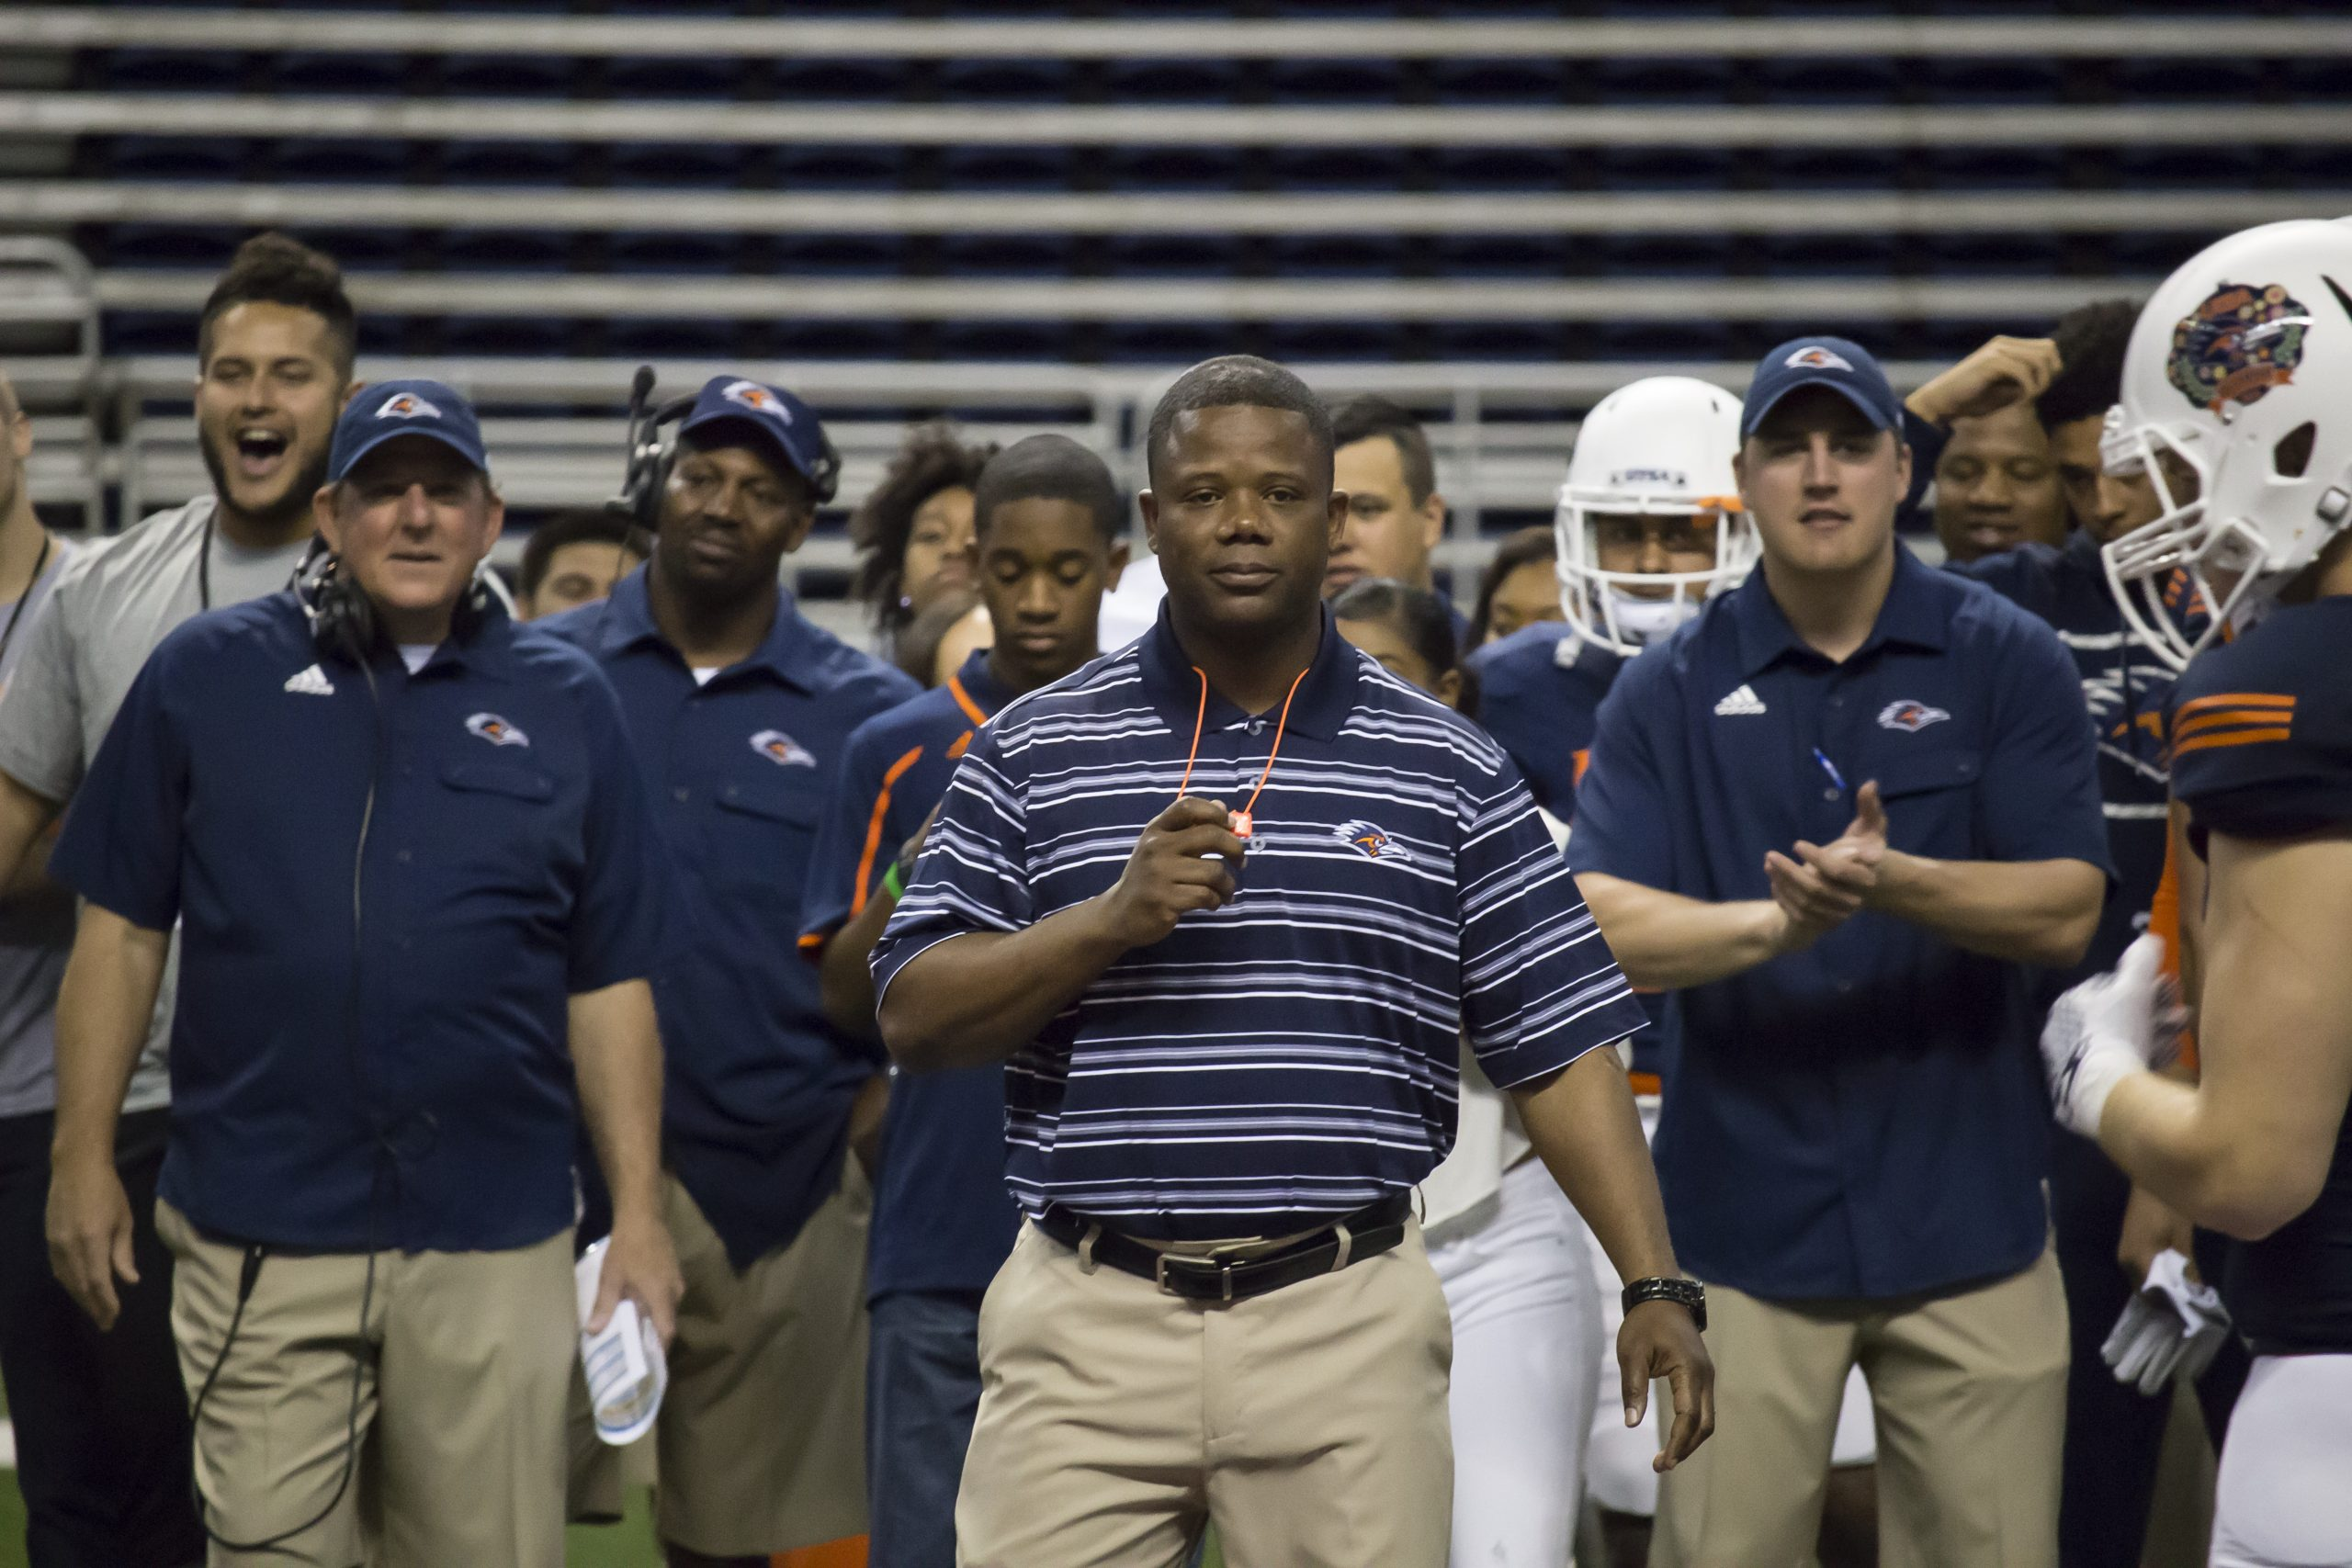 Frank Wilson, in his first season as UTSA footballs's head coach, is bringing a new style of play to the football program. David Guel, The Paisano